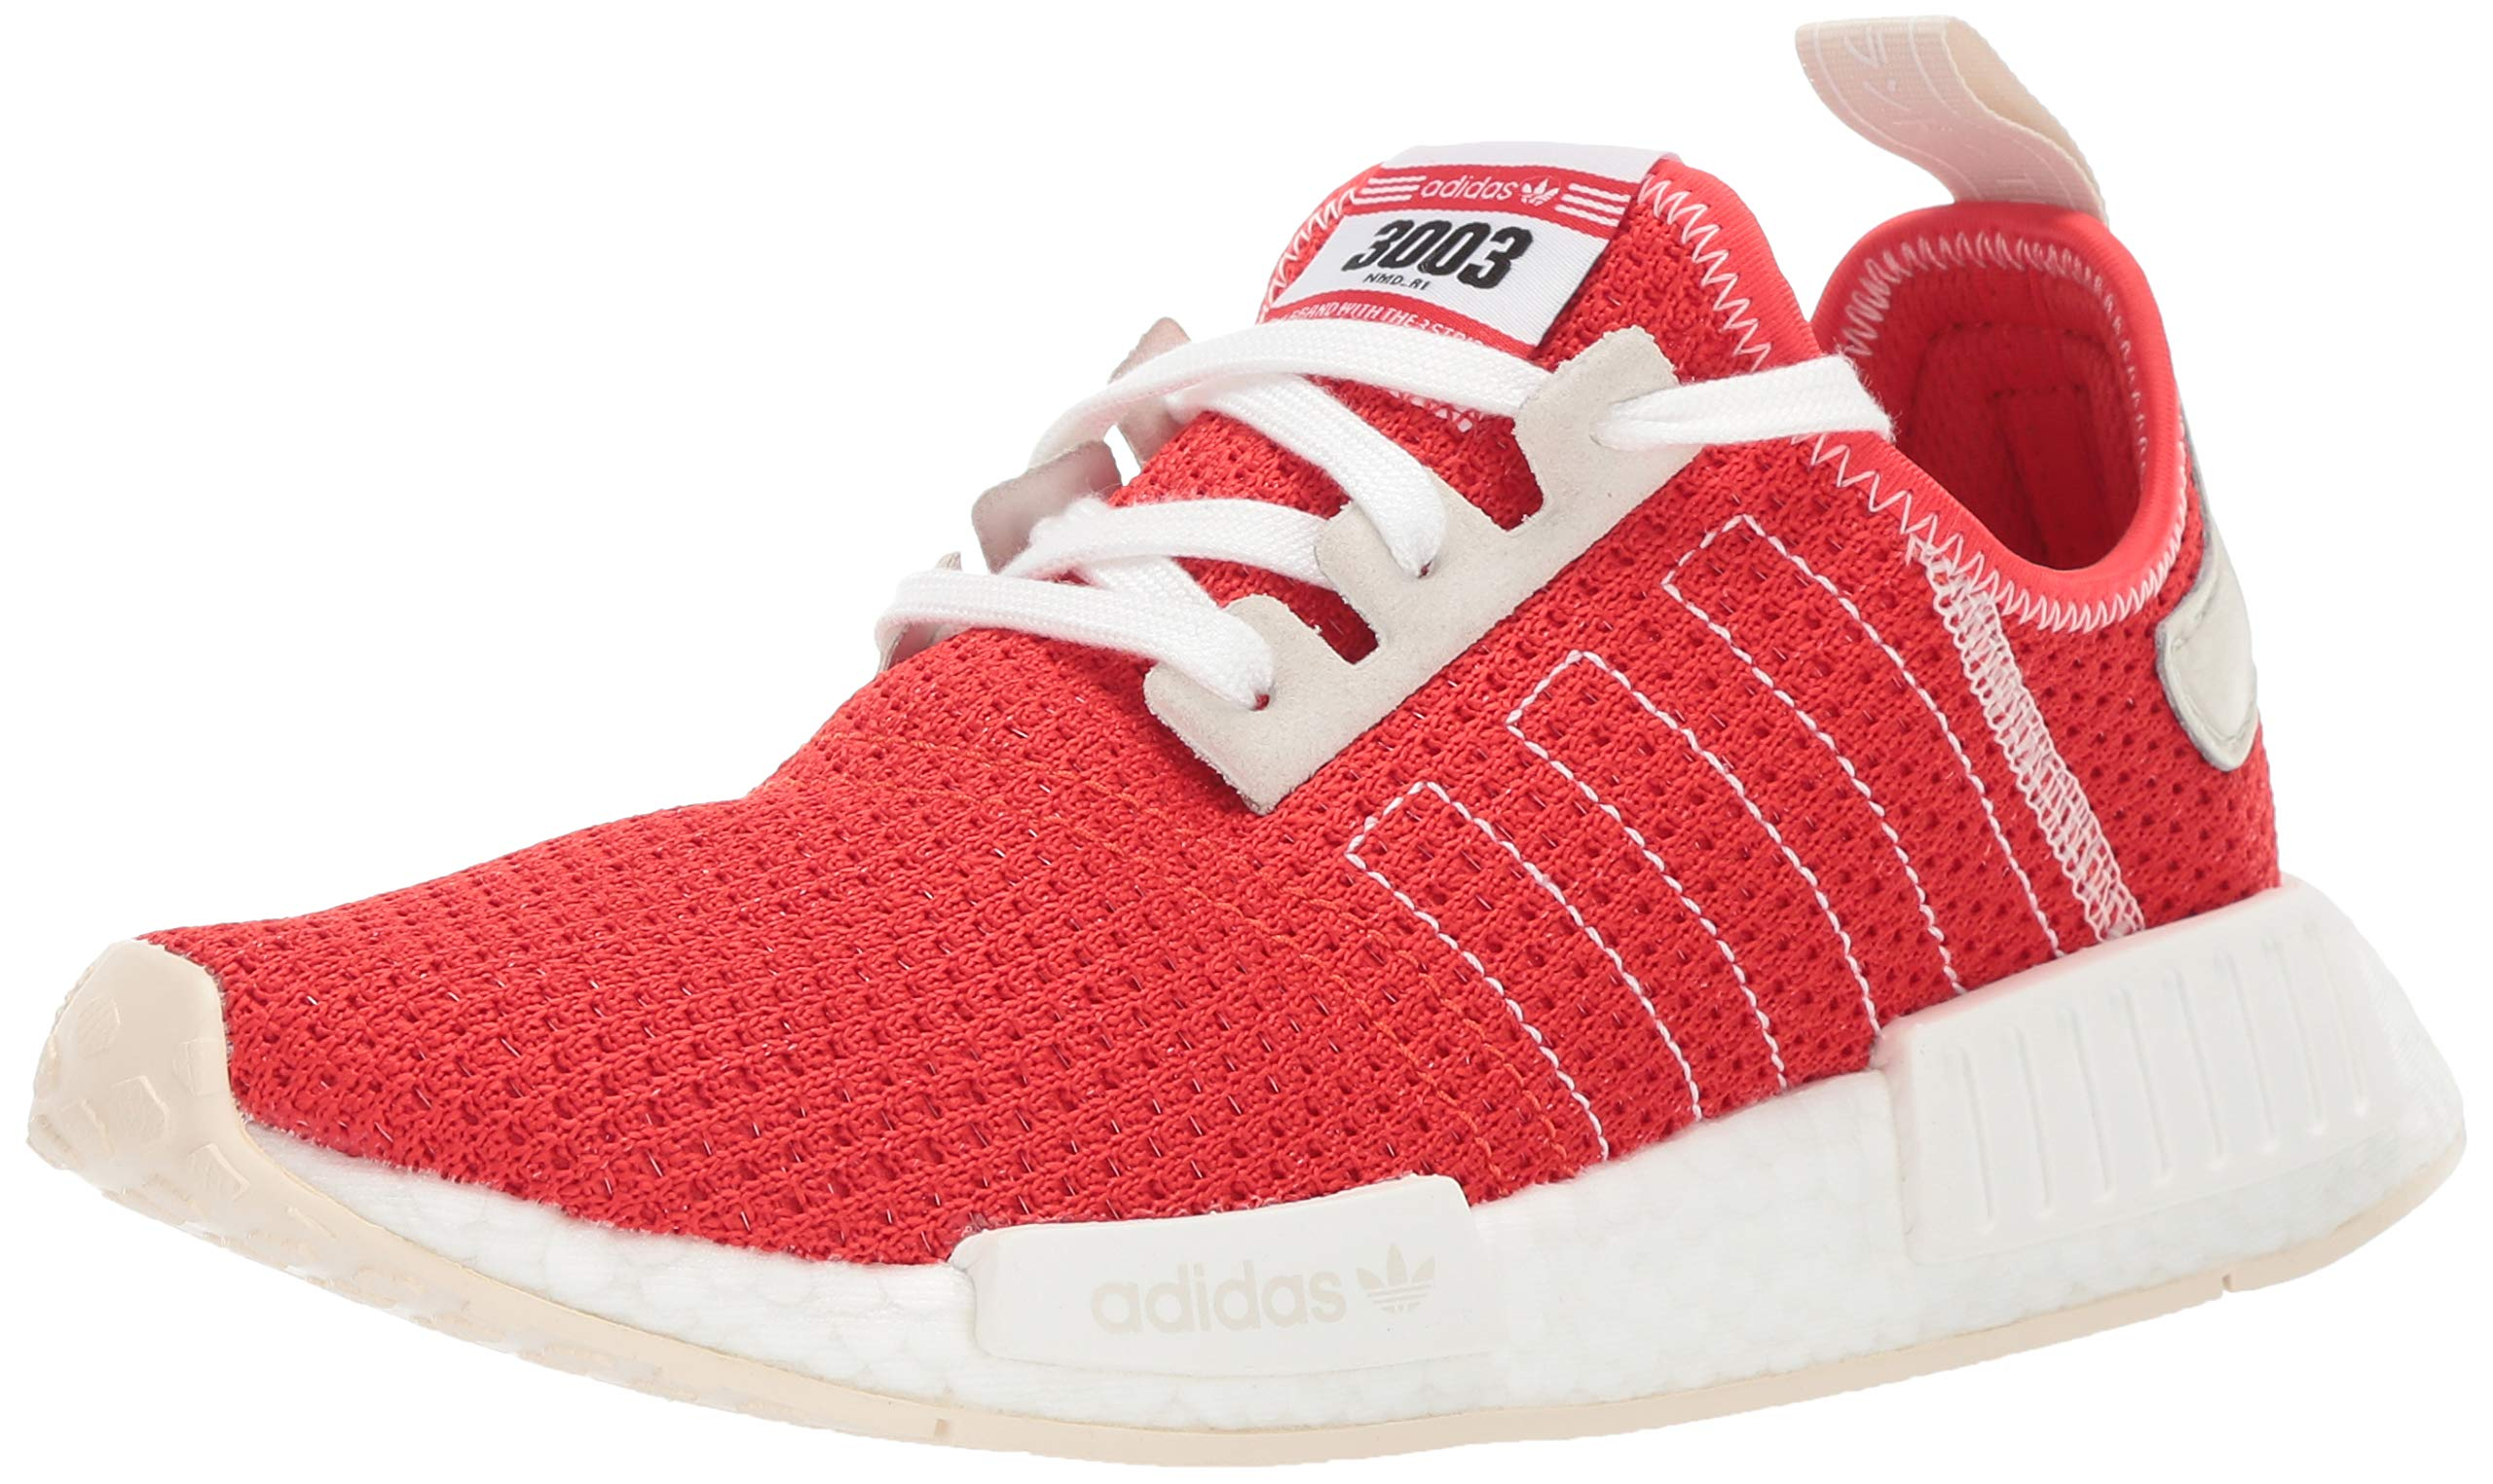 adidas Originals Men's NMD_R1 Running Shoe, Active red/Ecru Tint, 4.5 M US by adidas Originals (Image #1)